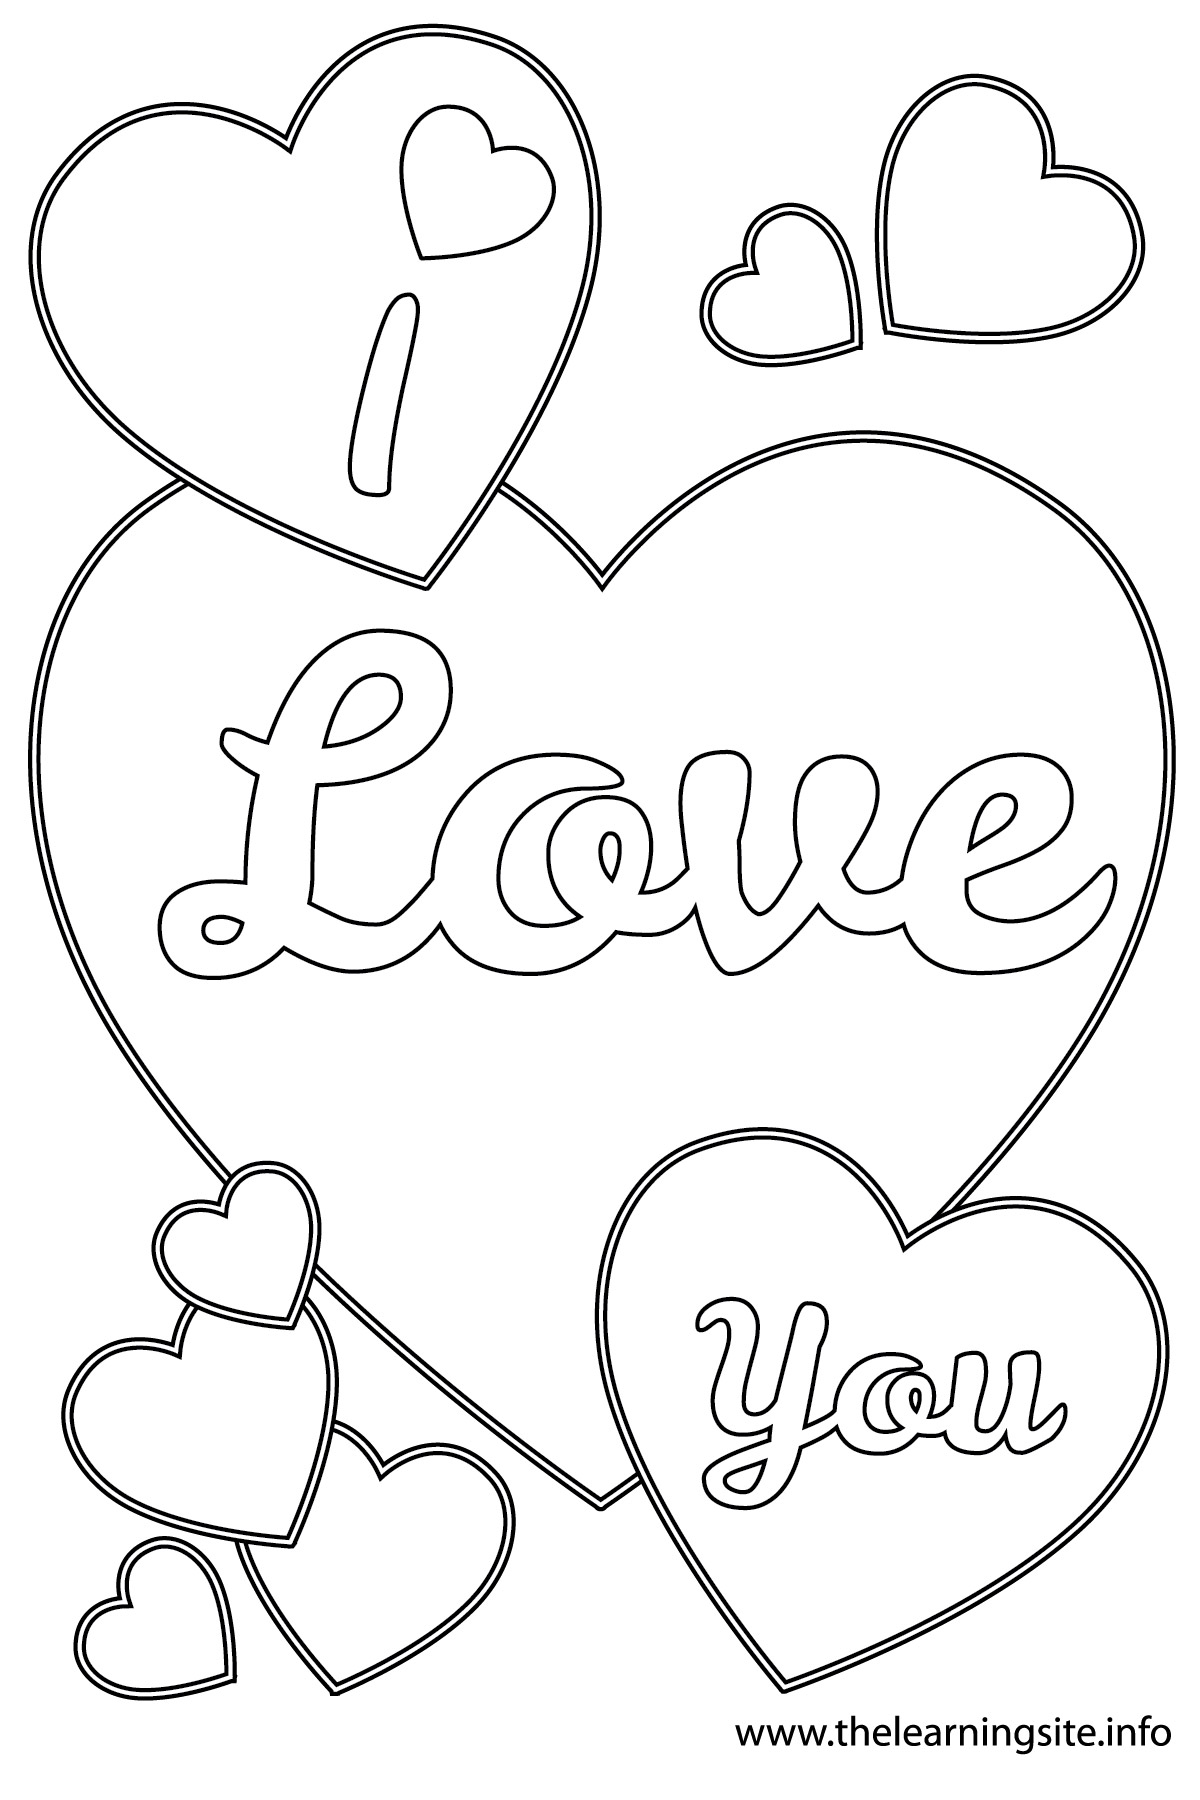 Coloring Pages I Love You : Free love heart drawing coloring pages